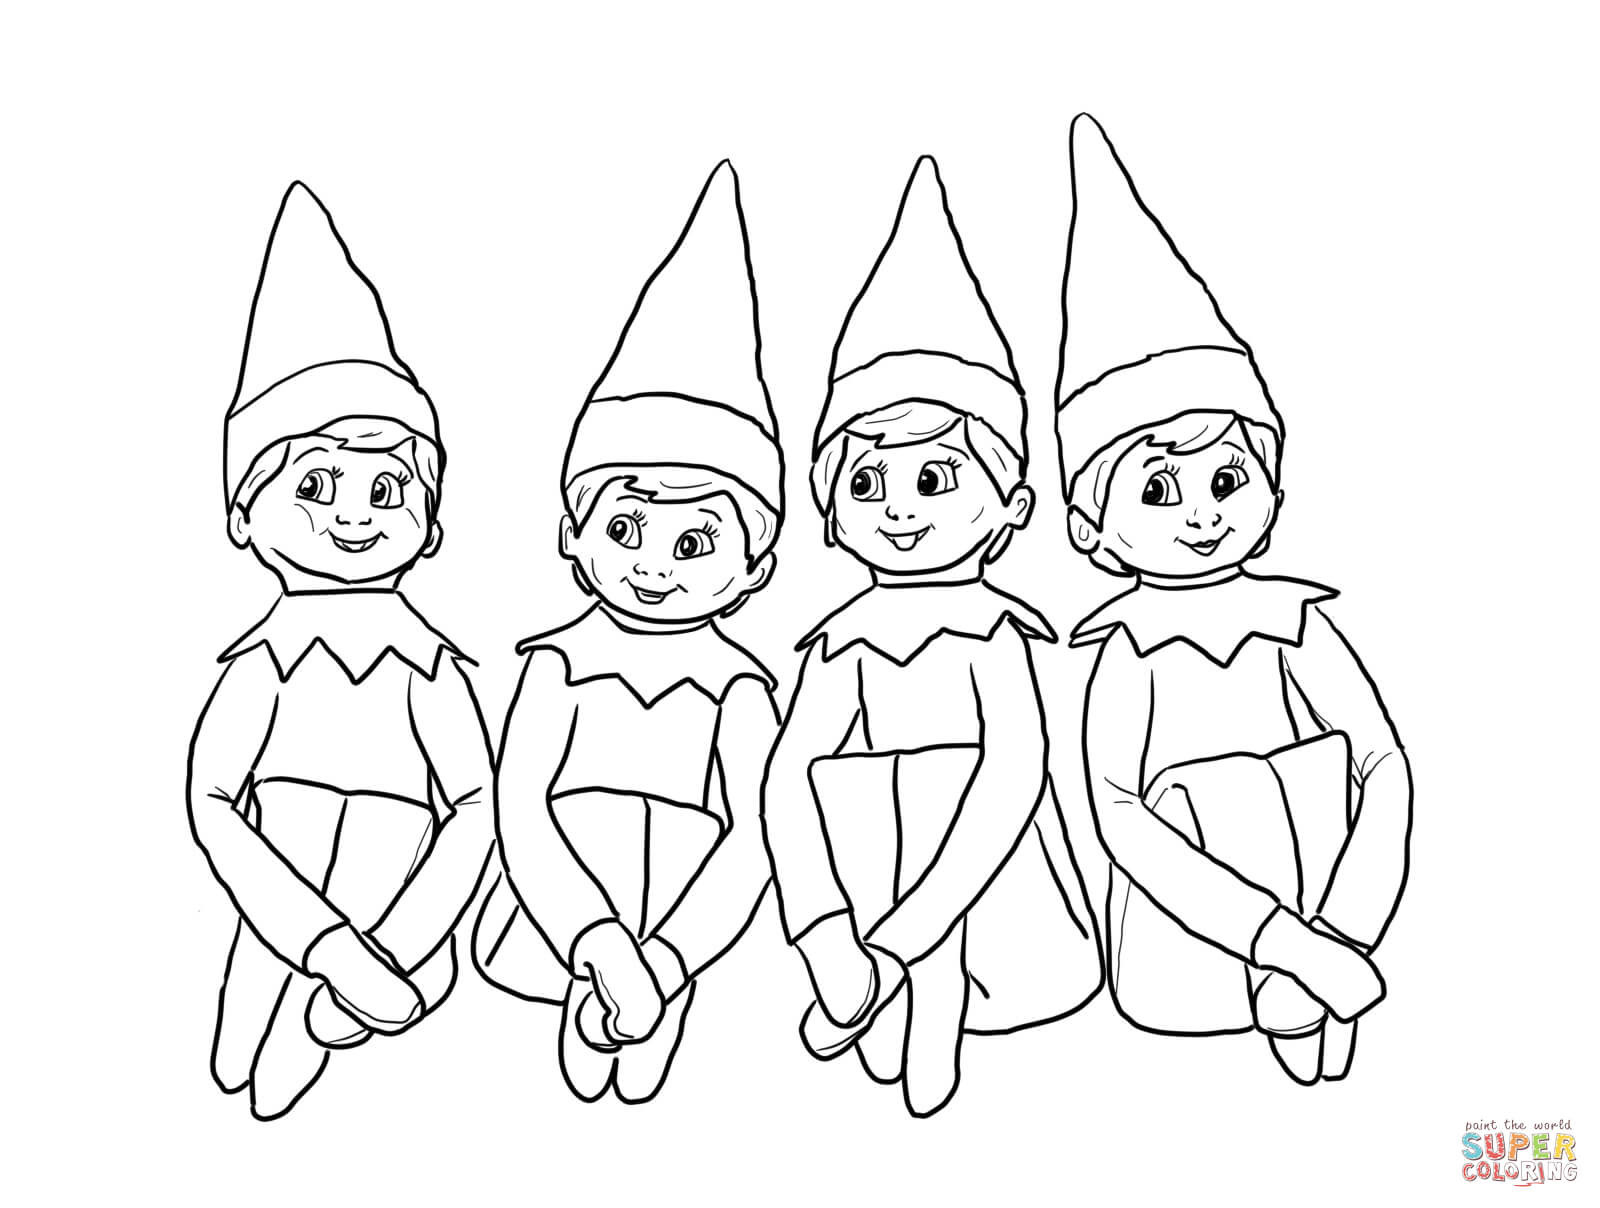 Best ideas about Elf On The Shelf Printable Coloring Pages . Save or Pin Elf The Shelf Coloring Pages To Print Coloring Home Now.